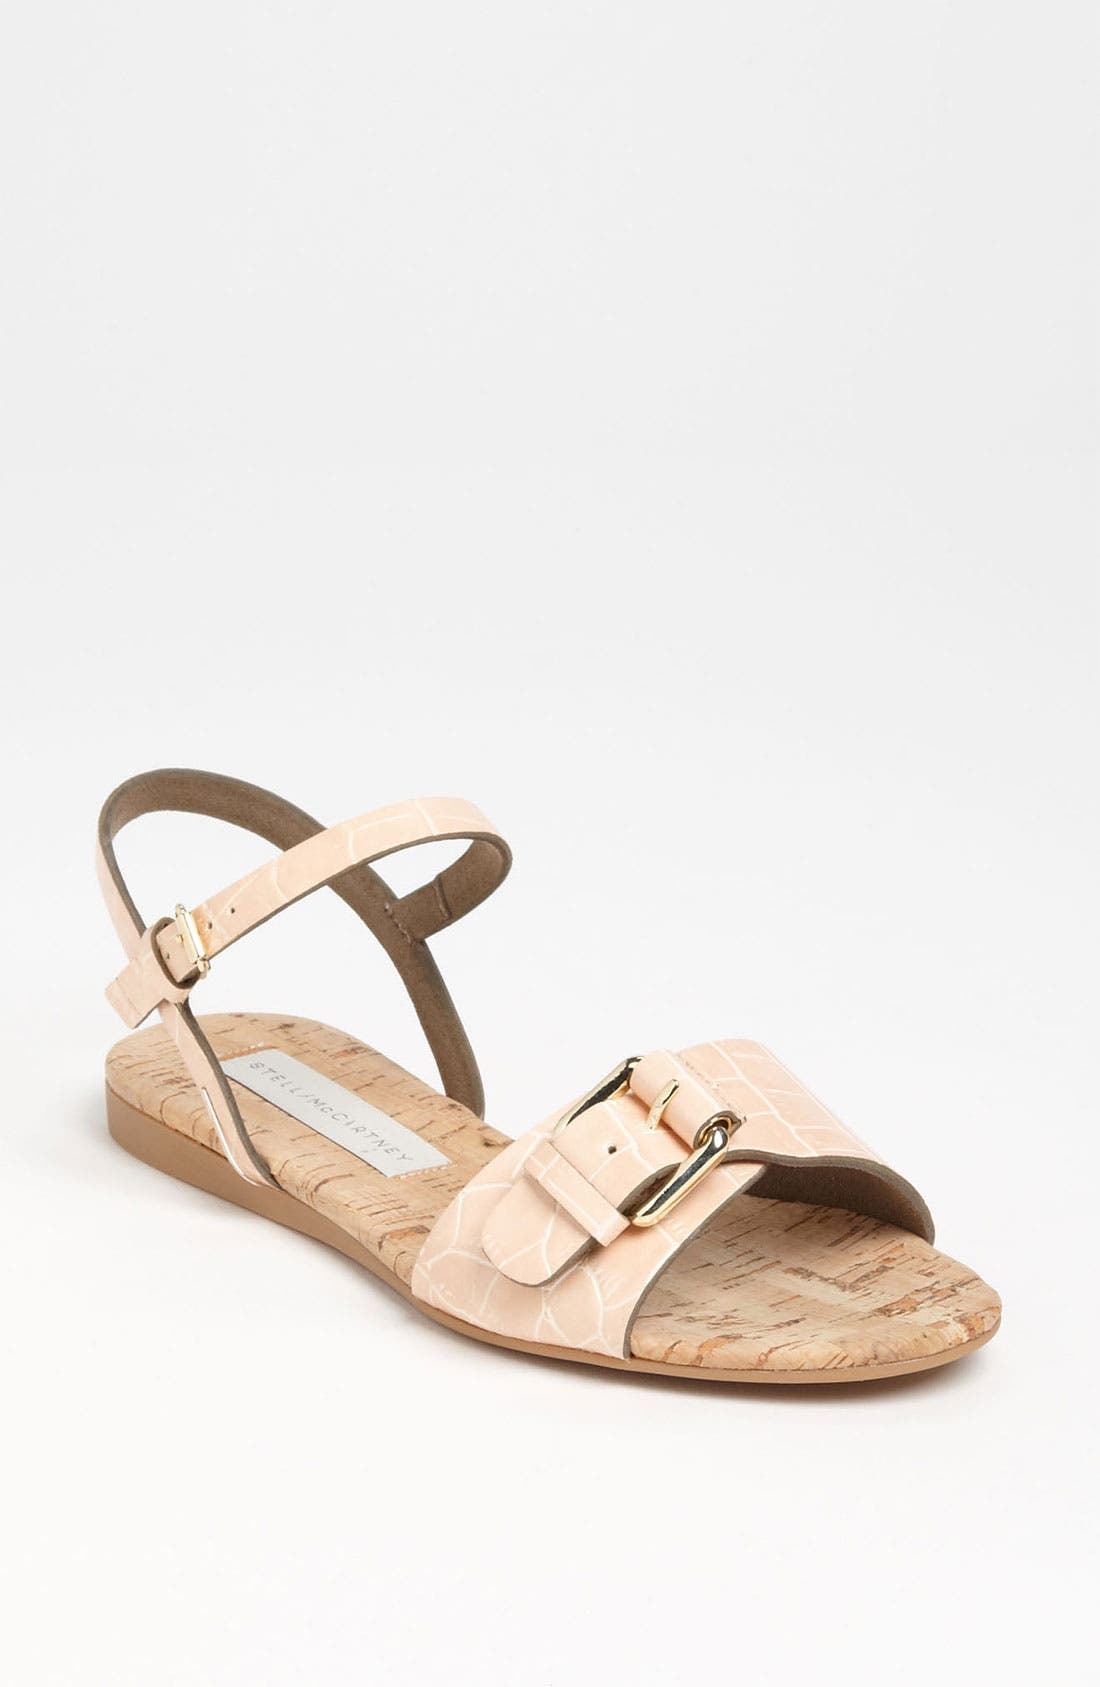 Alternate Image 1 Selected - Stella McCartney Flat Sandal